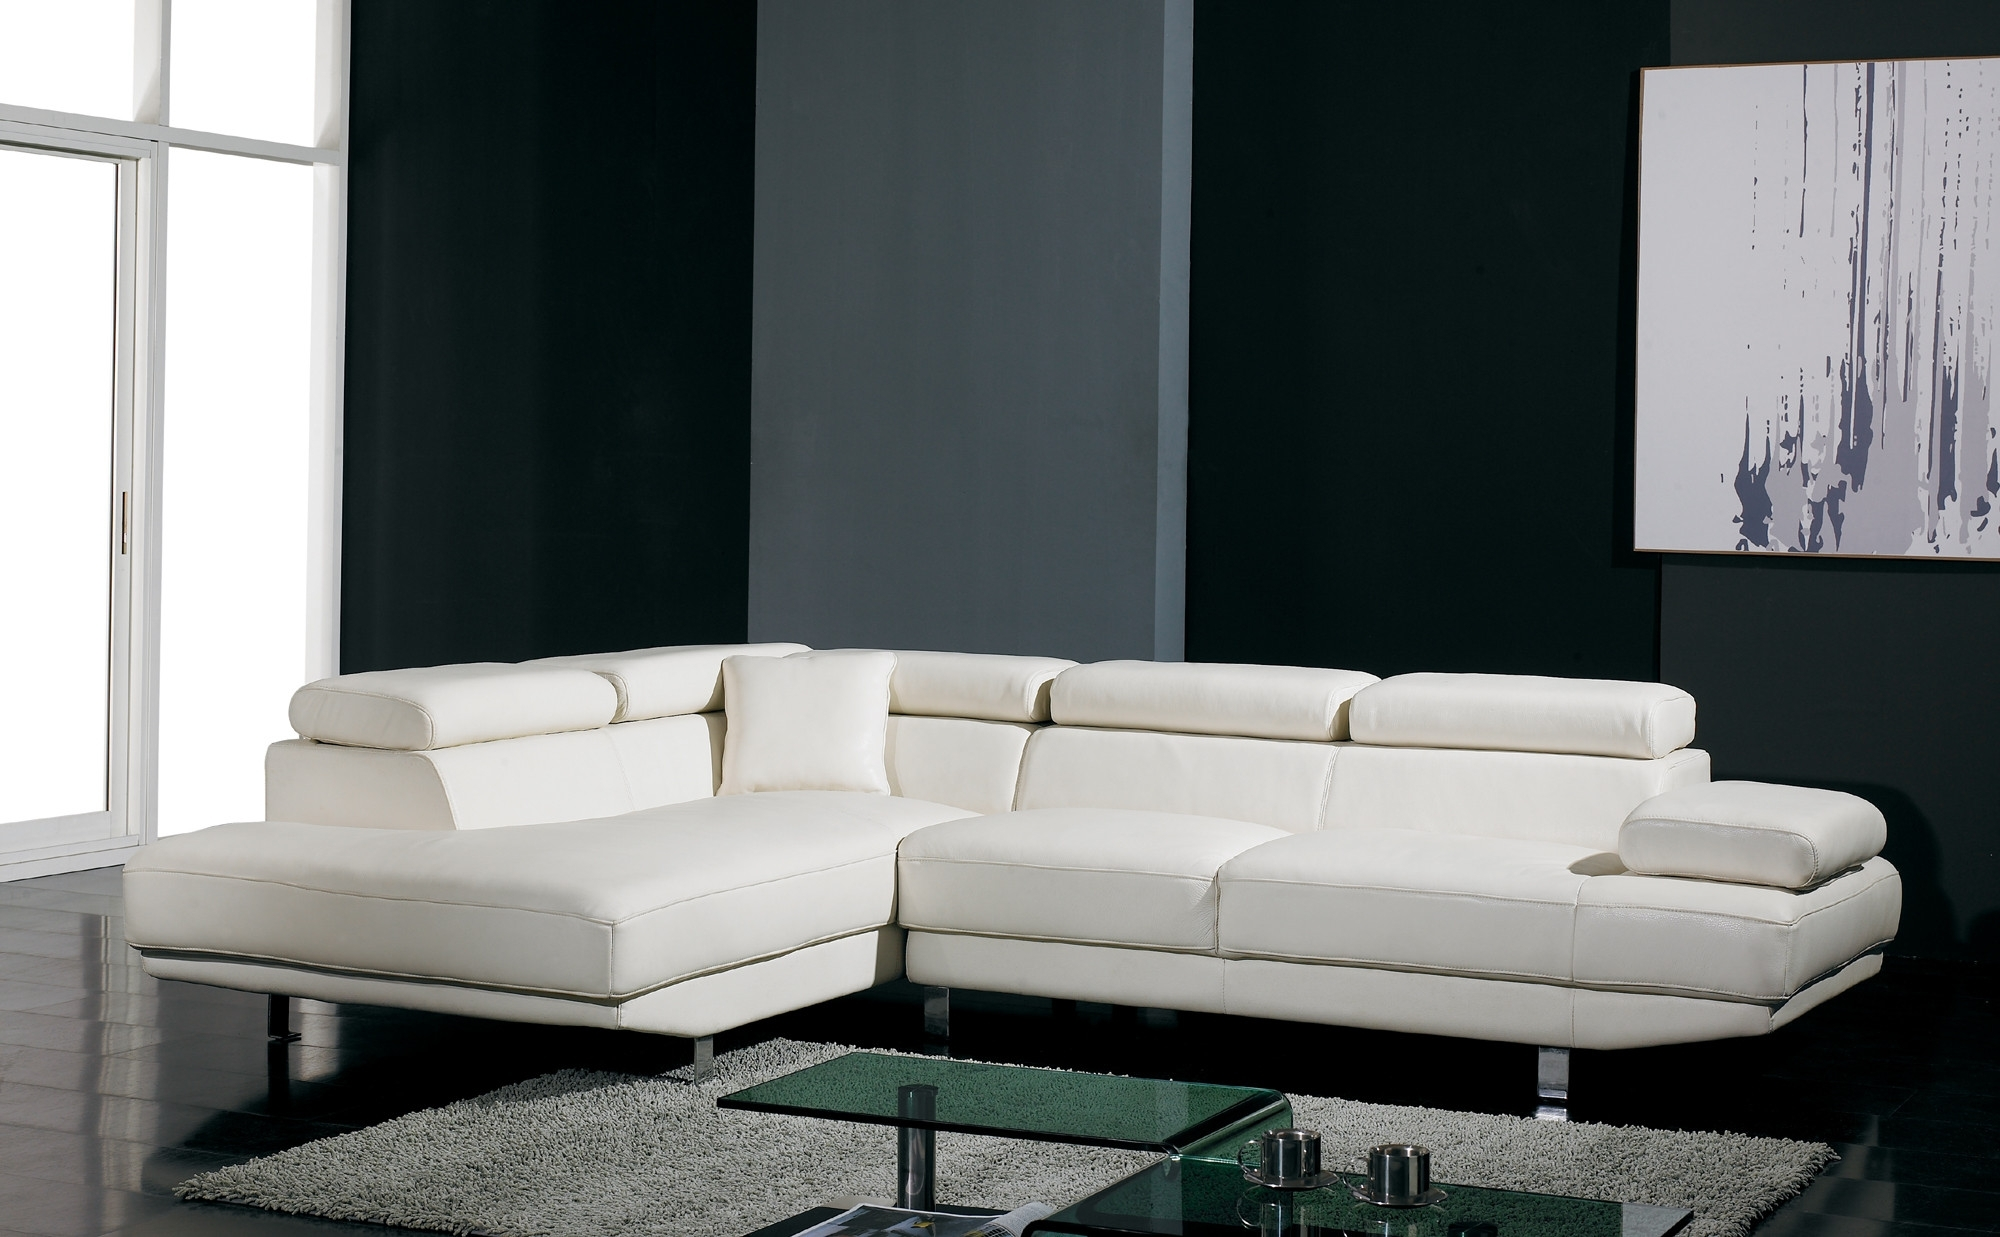 Fashionable Modern Sectional Sofas With Regard To T60 – Ultra Modern White Leather Sectional Sofa (View 11 of 20)